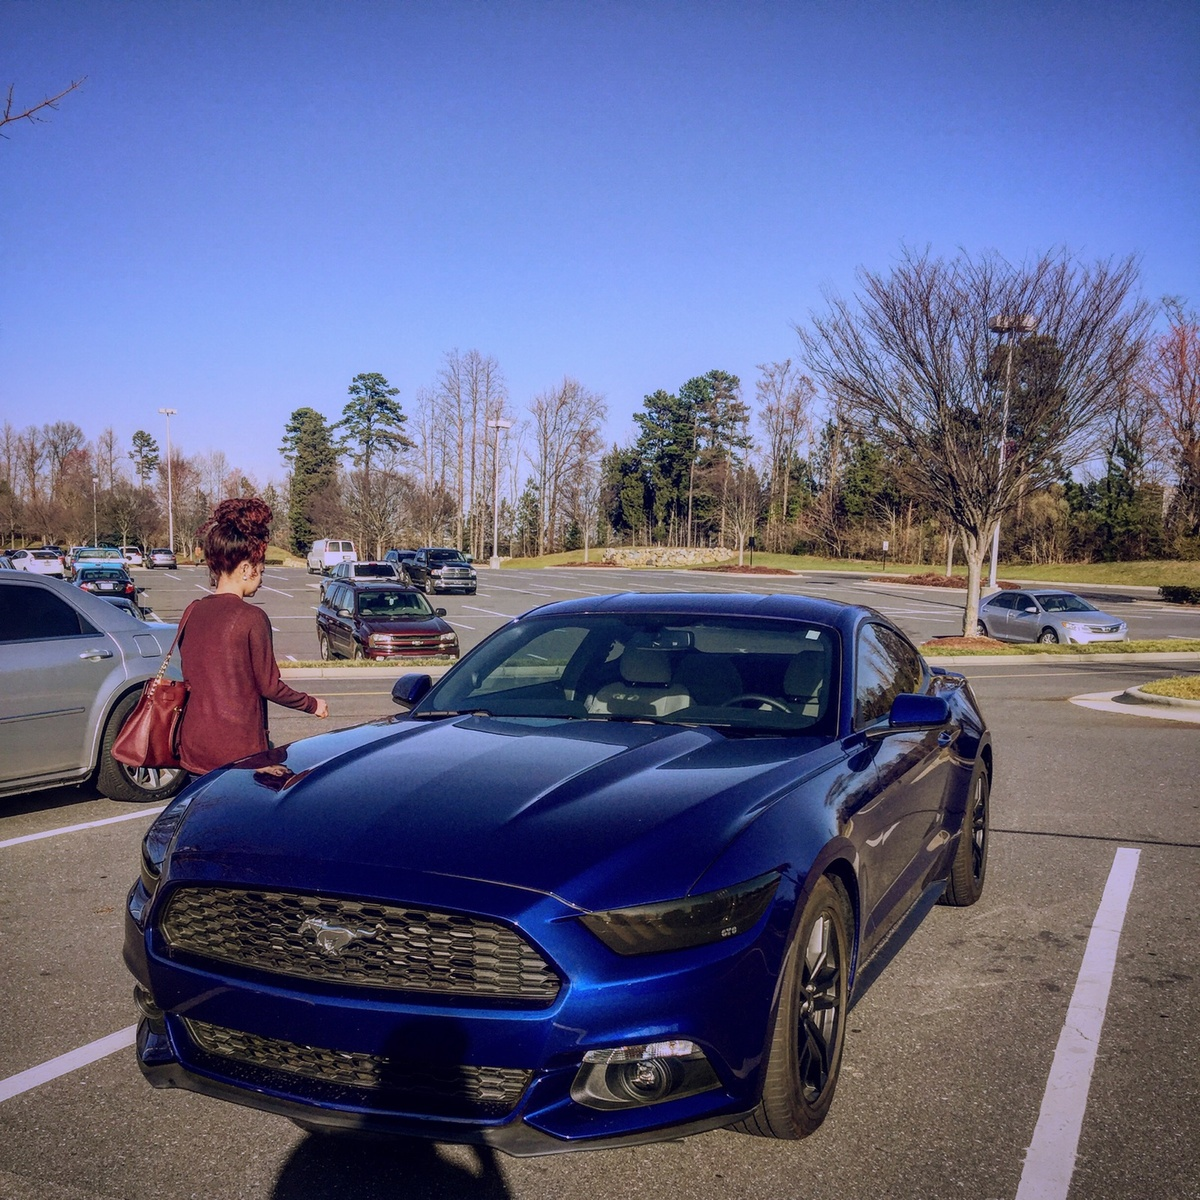 New Ford Vehicles For 2016: 2015 / 2016 / 2017 Ford Mustang For Sale In Your Area